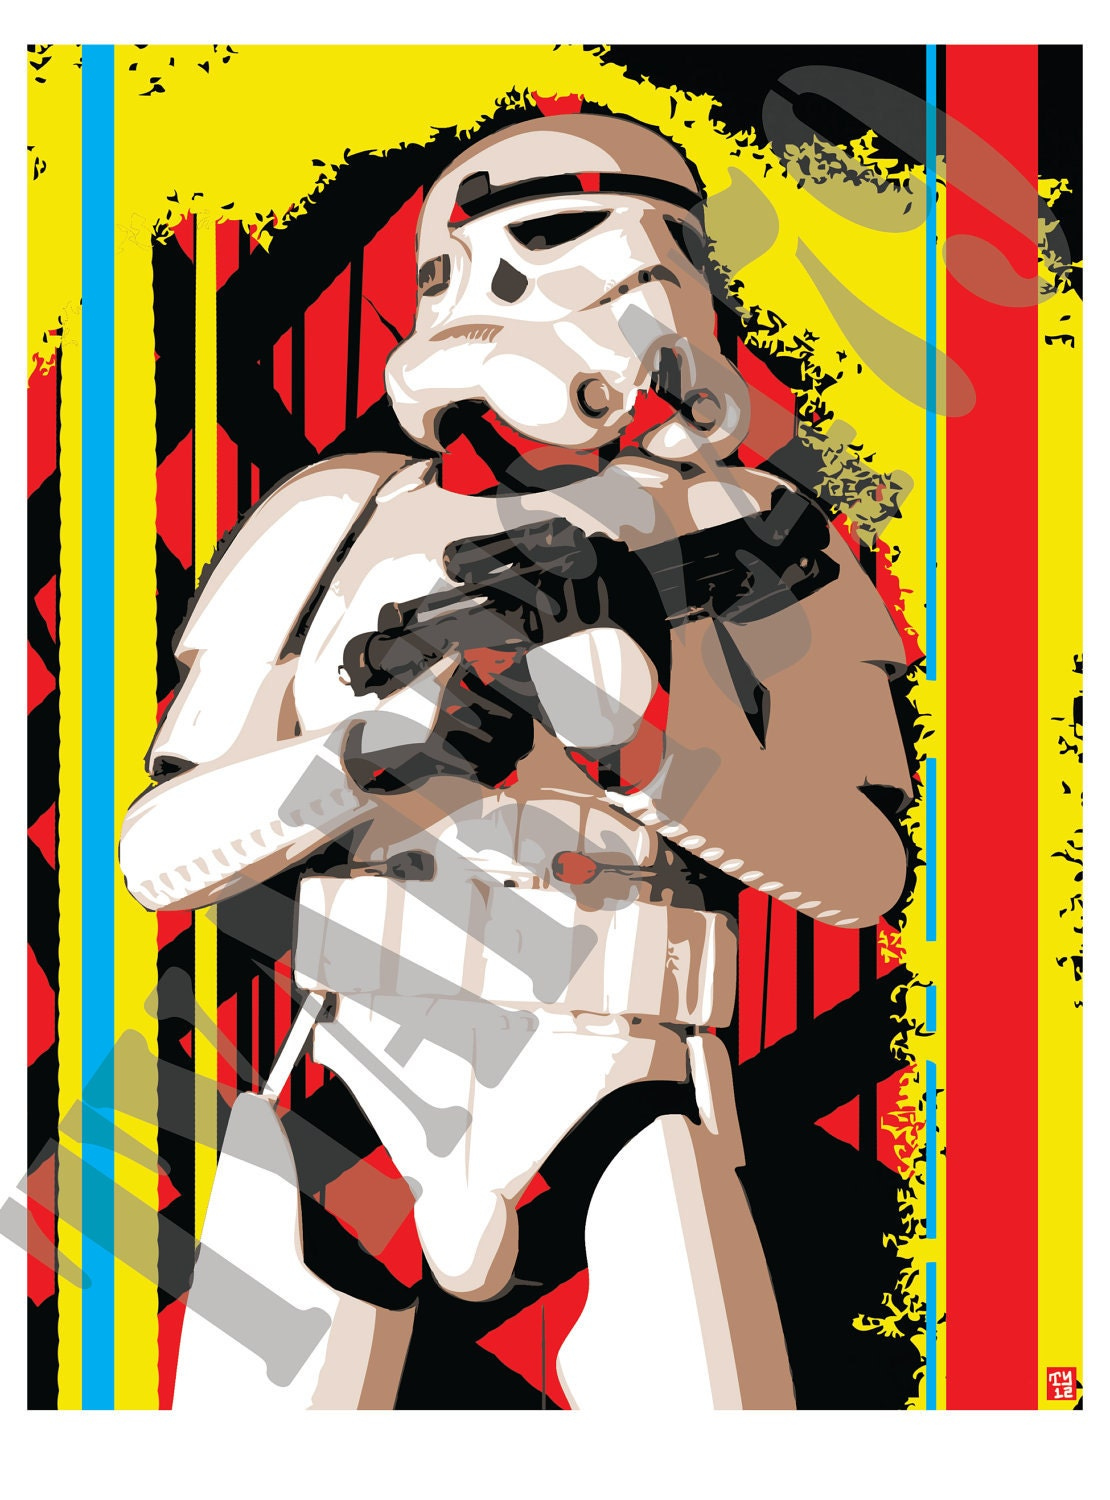 wall art home decor storm trooper star wars pop art poster. Black Bedroom Furniture Sets. Home Design Ideas